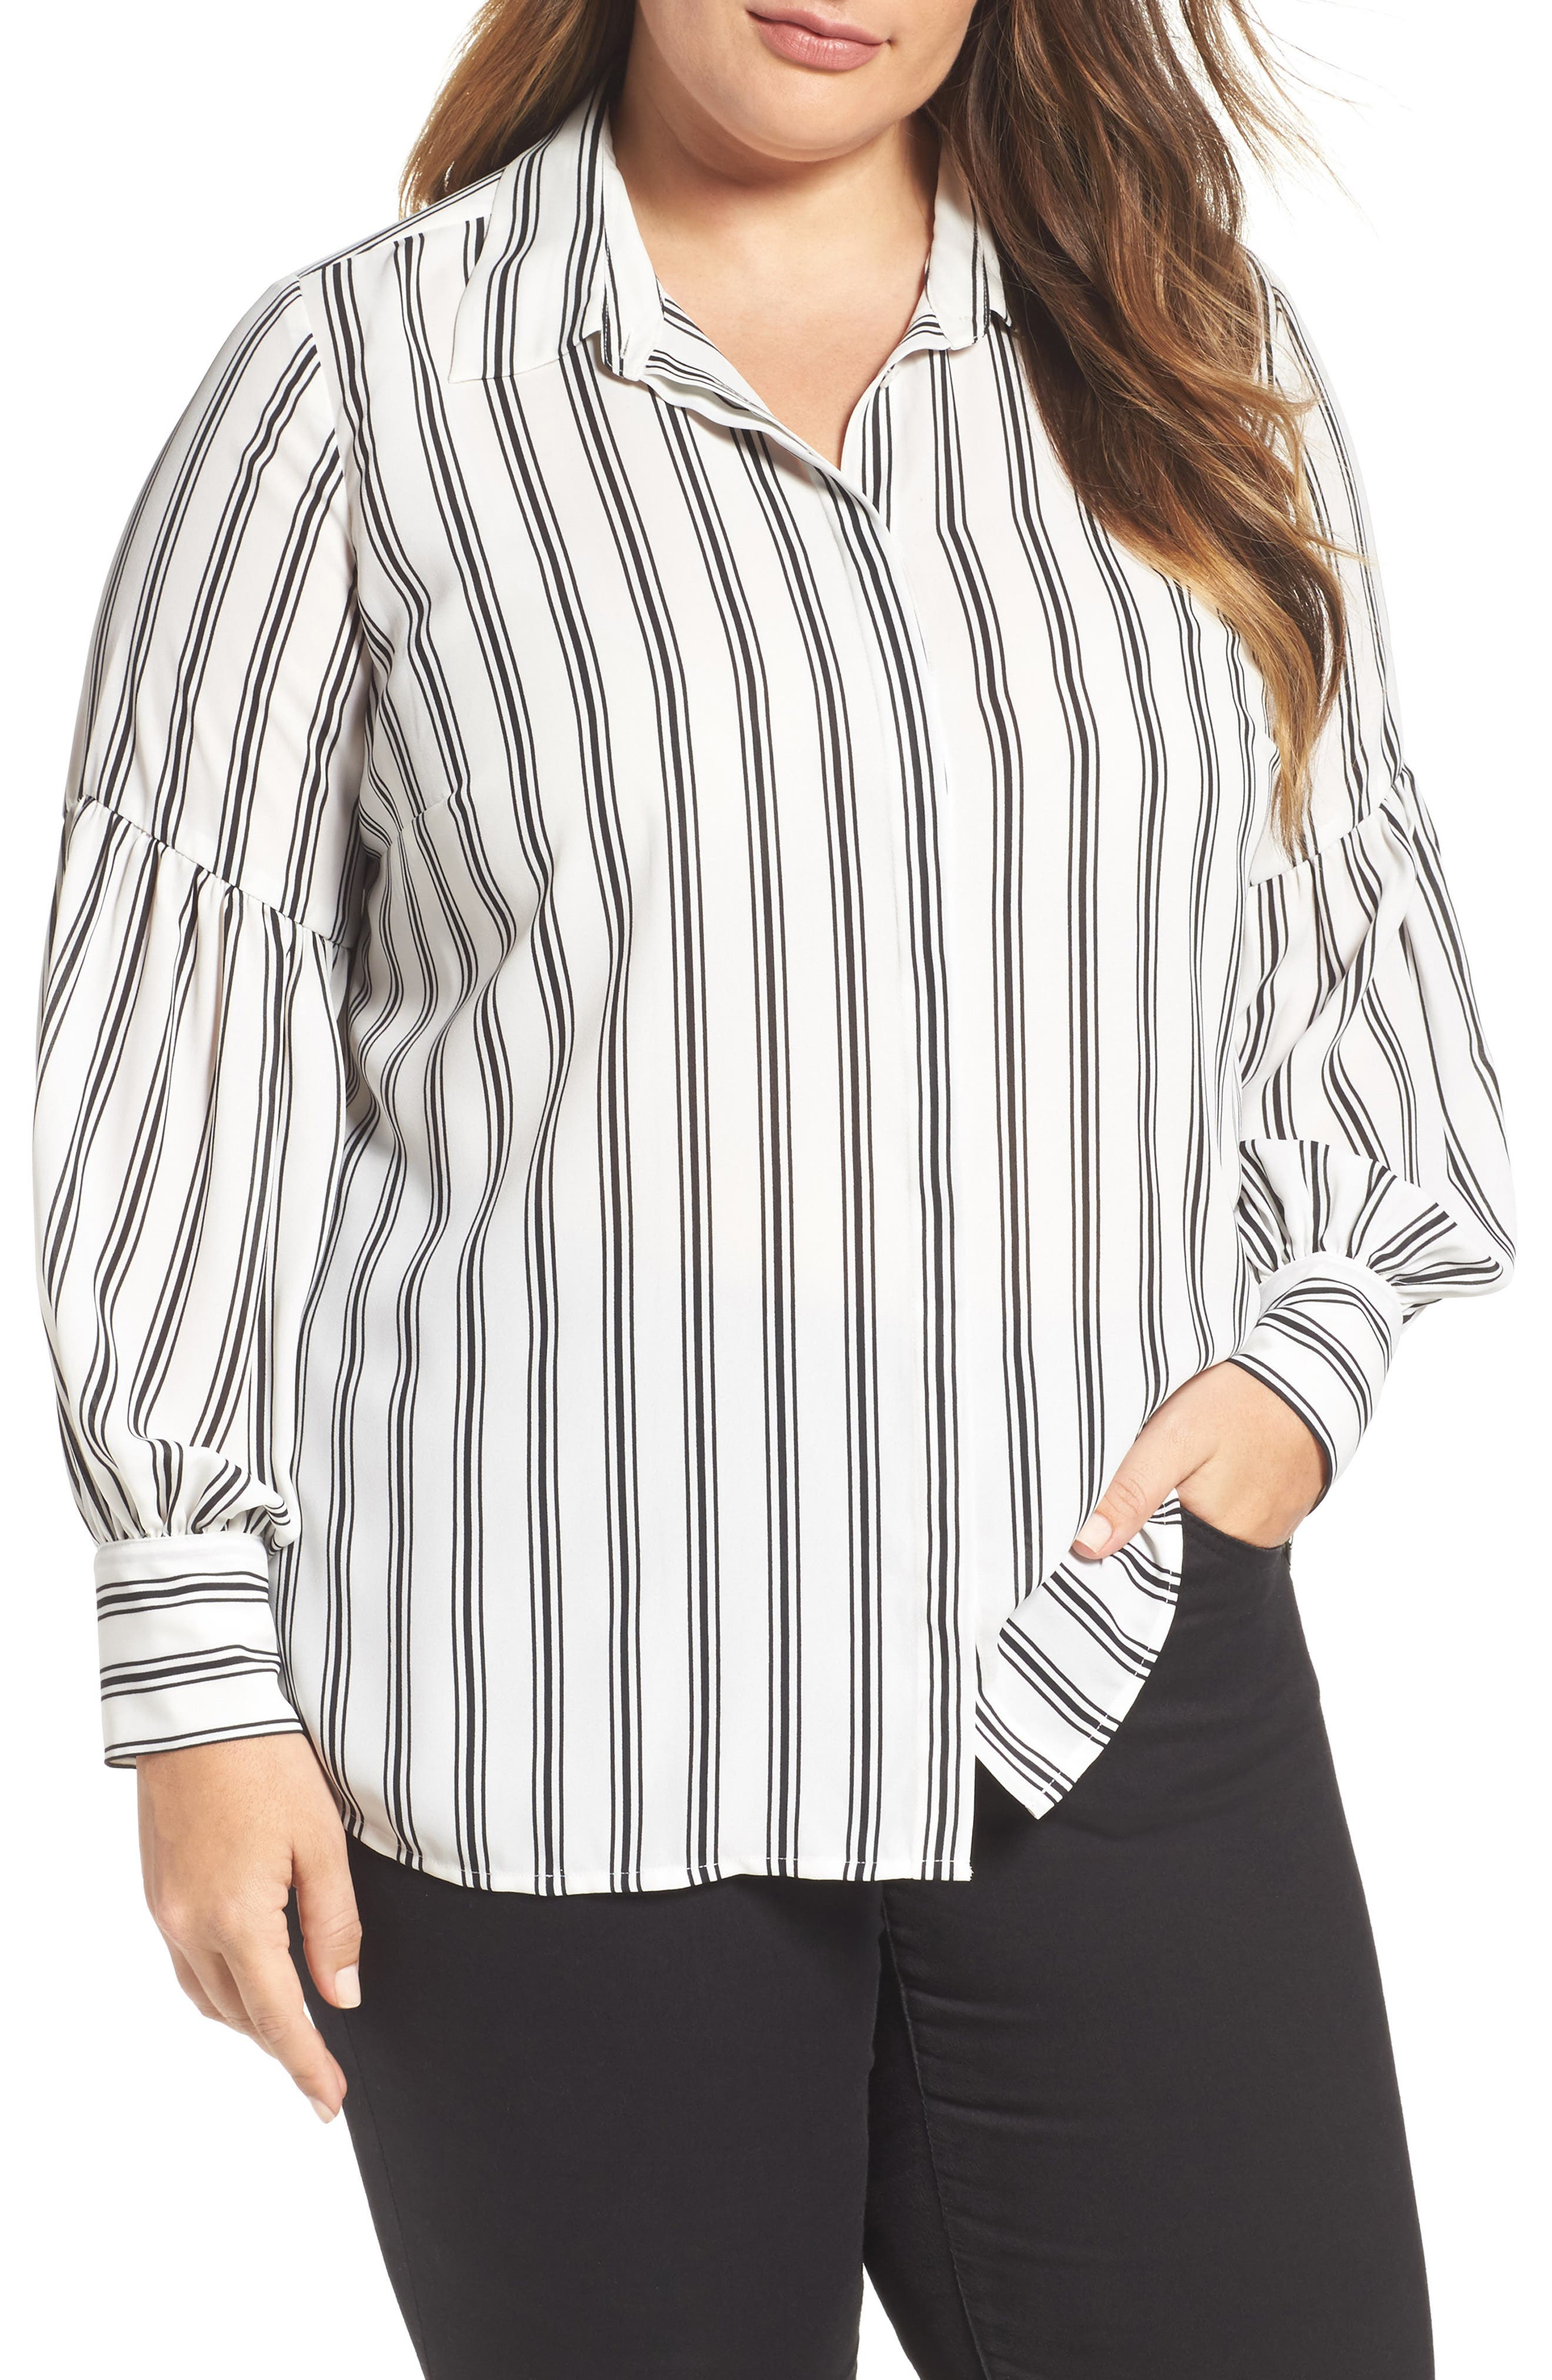 Vince Camuto Stripe Puff Sleeve Blouse (Plus Size)